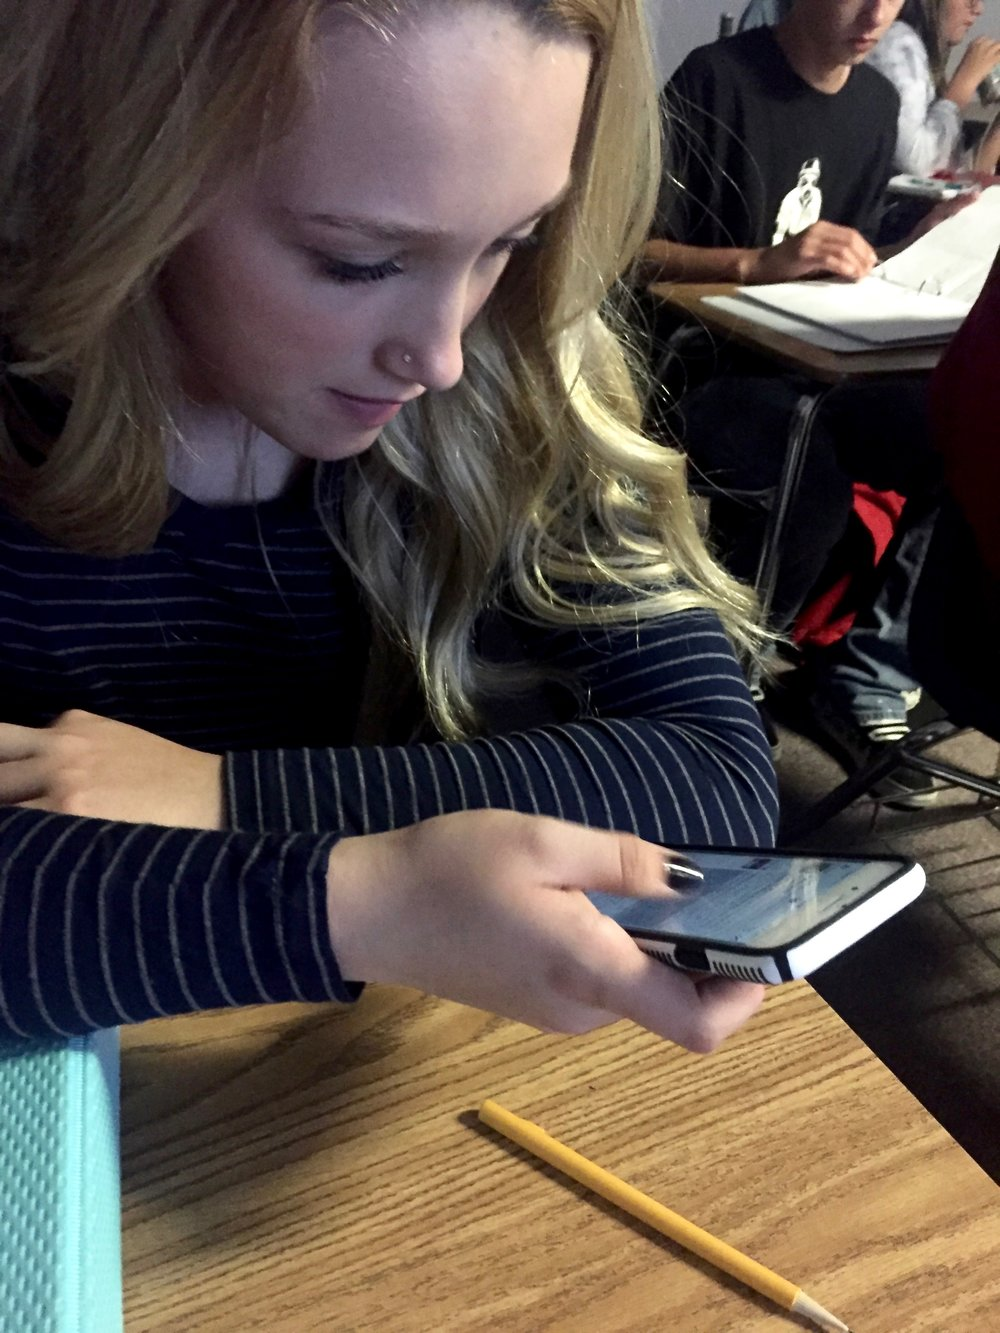 A Student Focused on Technology in the Classroom